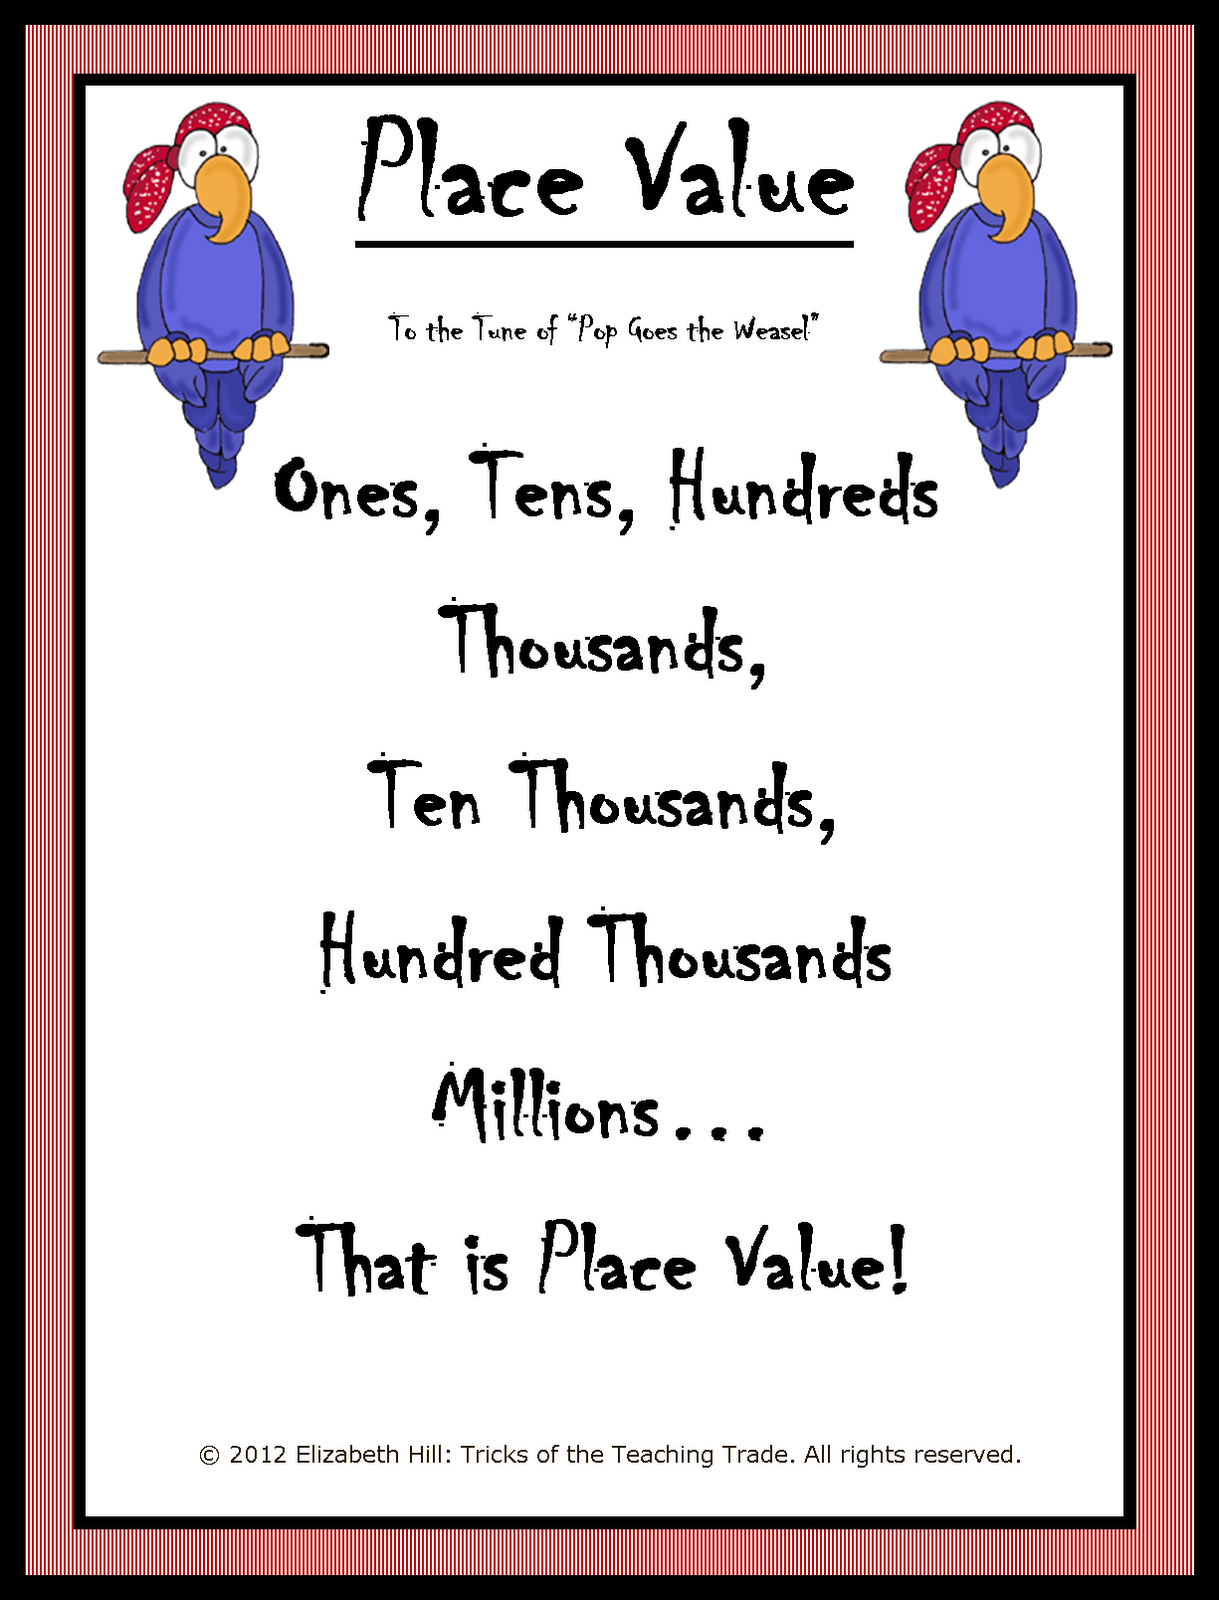 Worksheet Place Value For Kids tricks of the teaching trade pirate place value in last few years i created a powerpoint presentation that took students through by focusing first on identifying places where digi